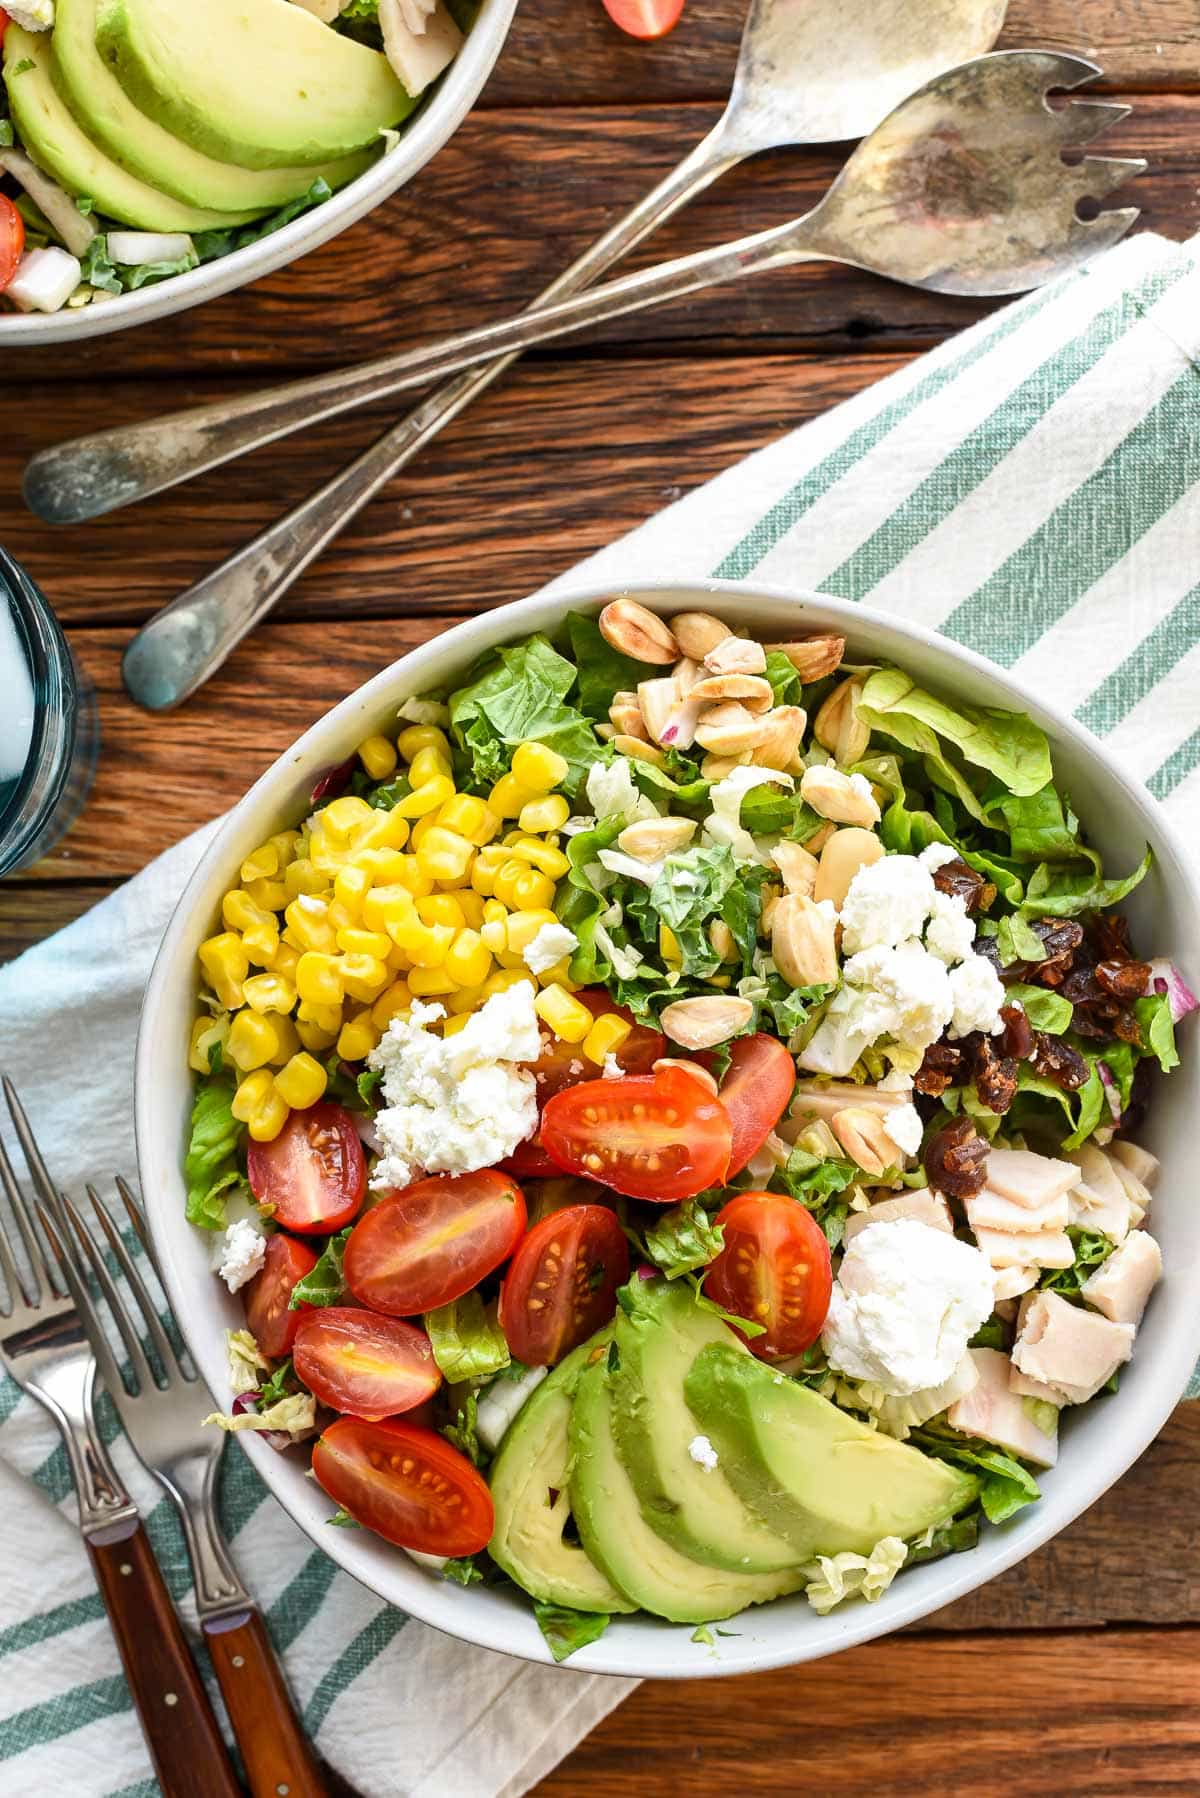 Make restaurant quality salads at home with this Copycat Northstar Chopped Salad loaded with dates, goat cheese, avocado, and corn!